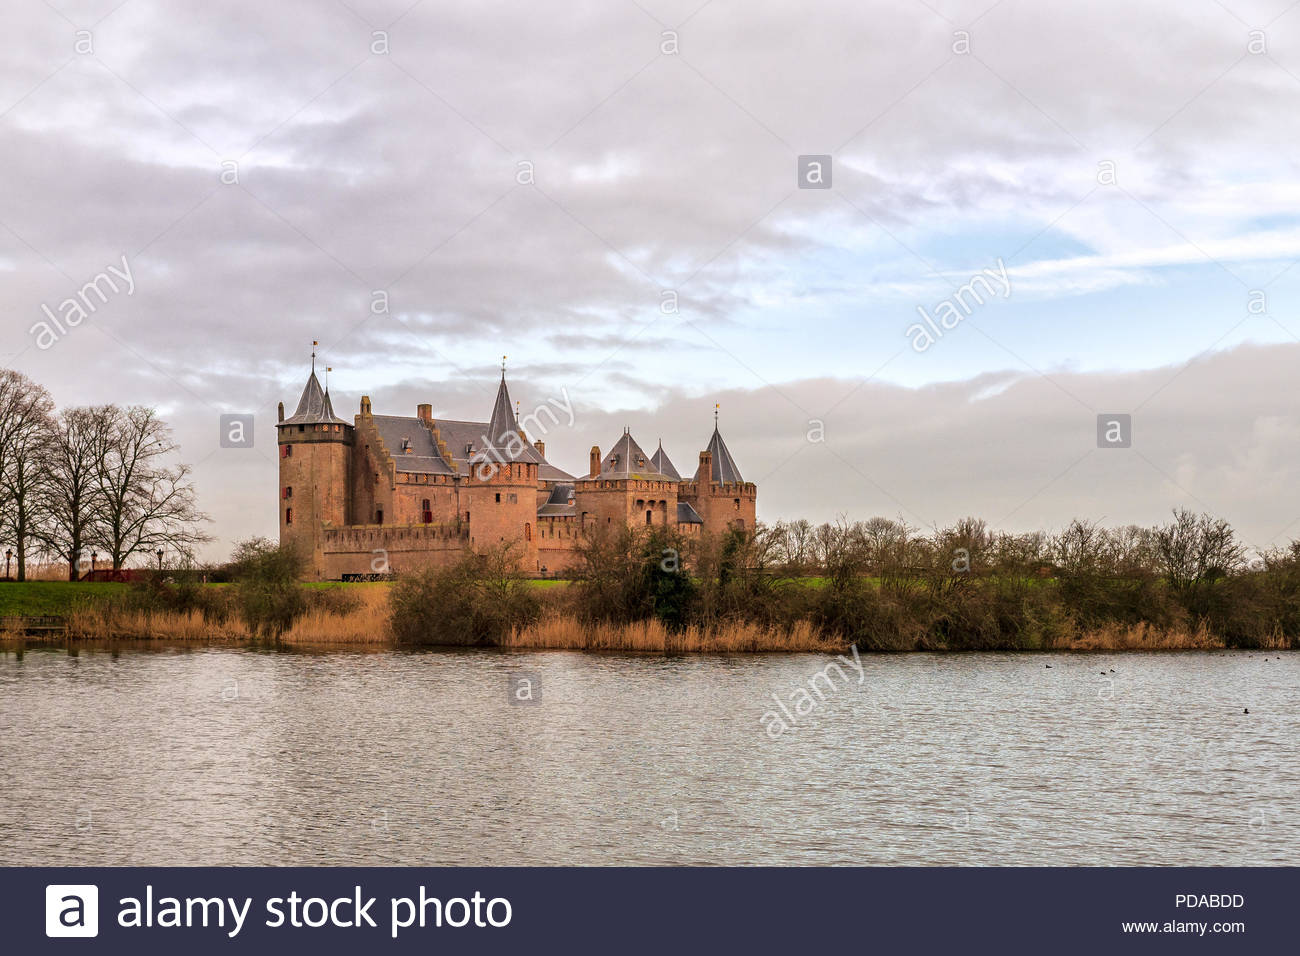 View of the Muiderslot, Amsterdam Castle, the best preserved medieval castle in the Netherlands, built around 1296. - Stock Image